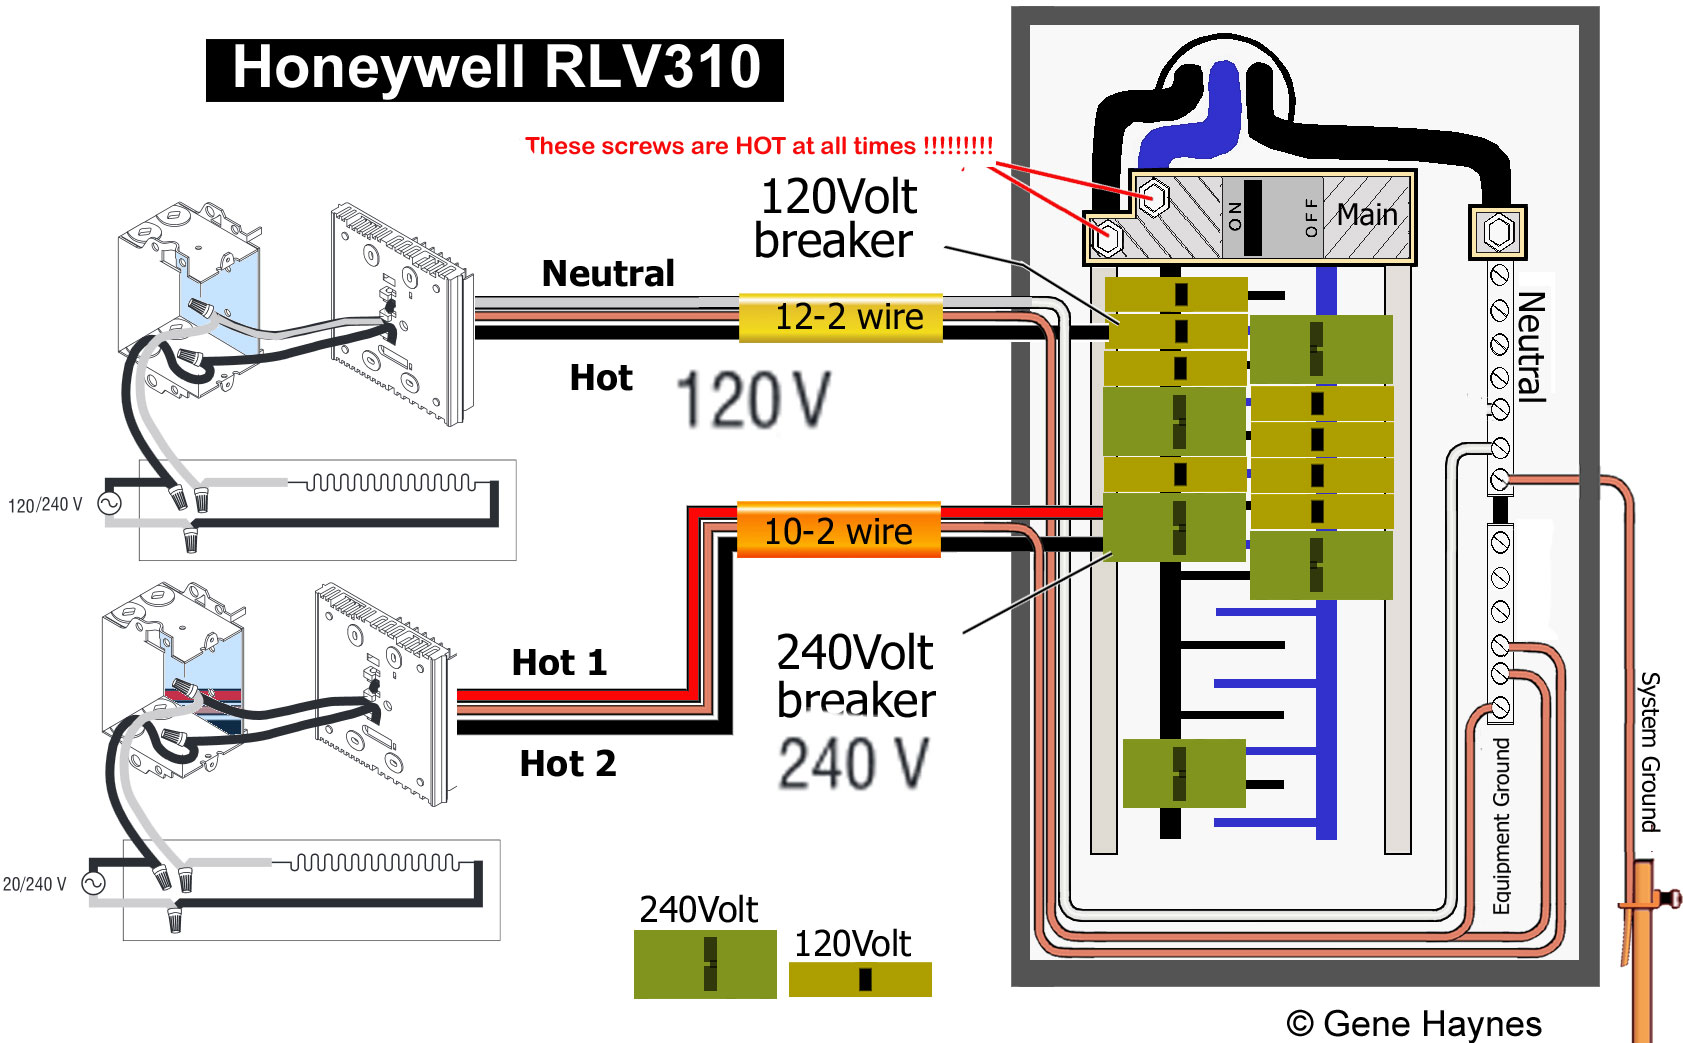 hight resolution of inside main breaker box 14 thermostat how to wire honeywell rlv310 thermostat honeywell baseboard thermostat wiring